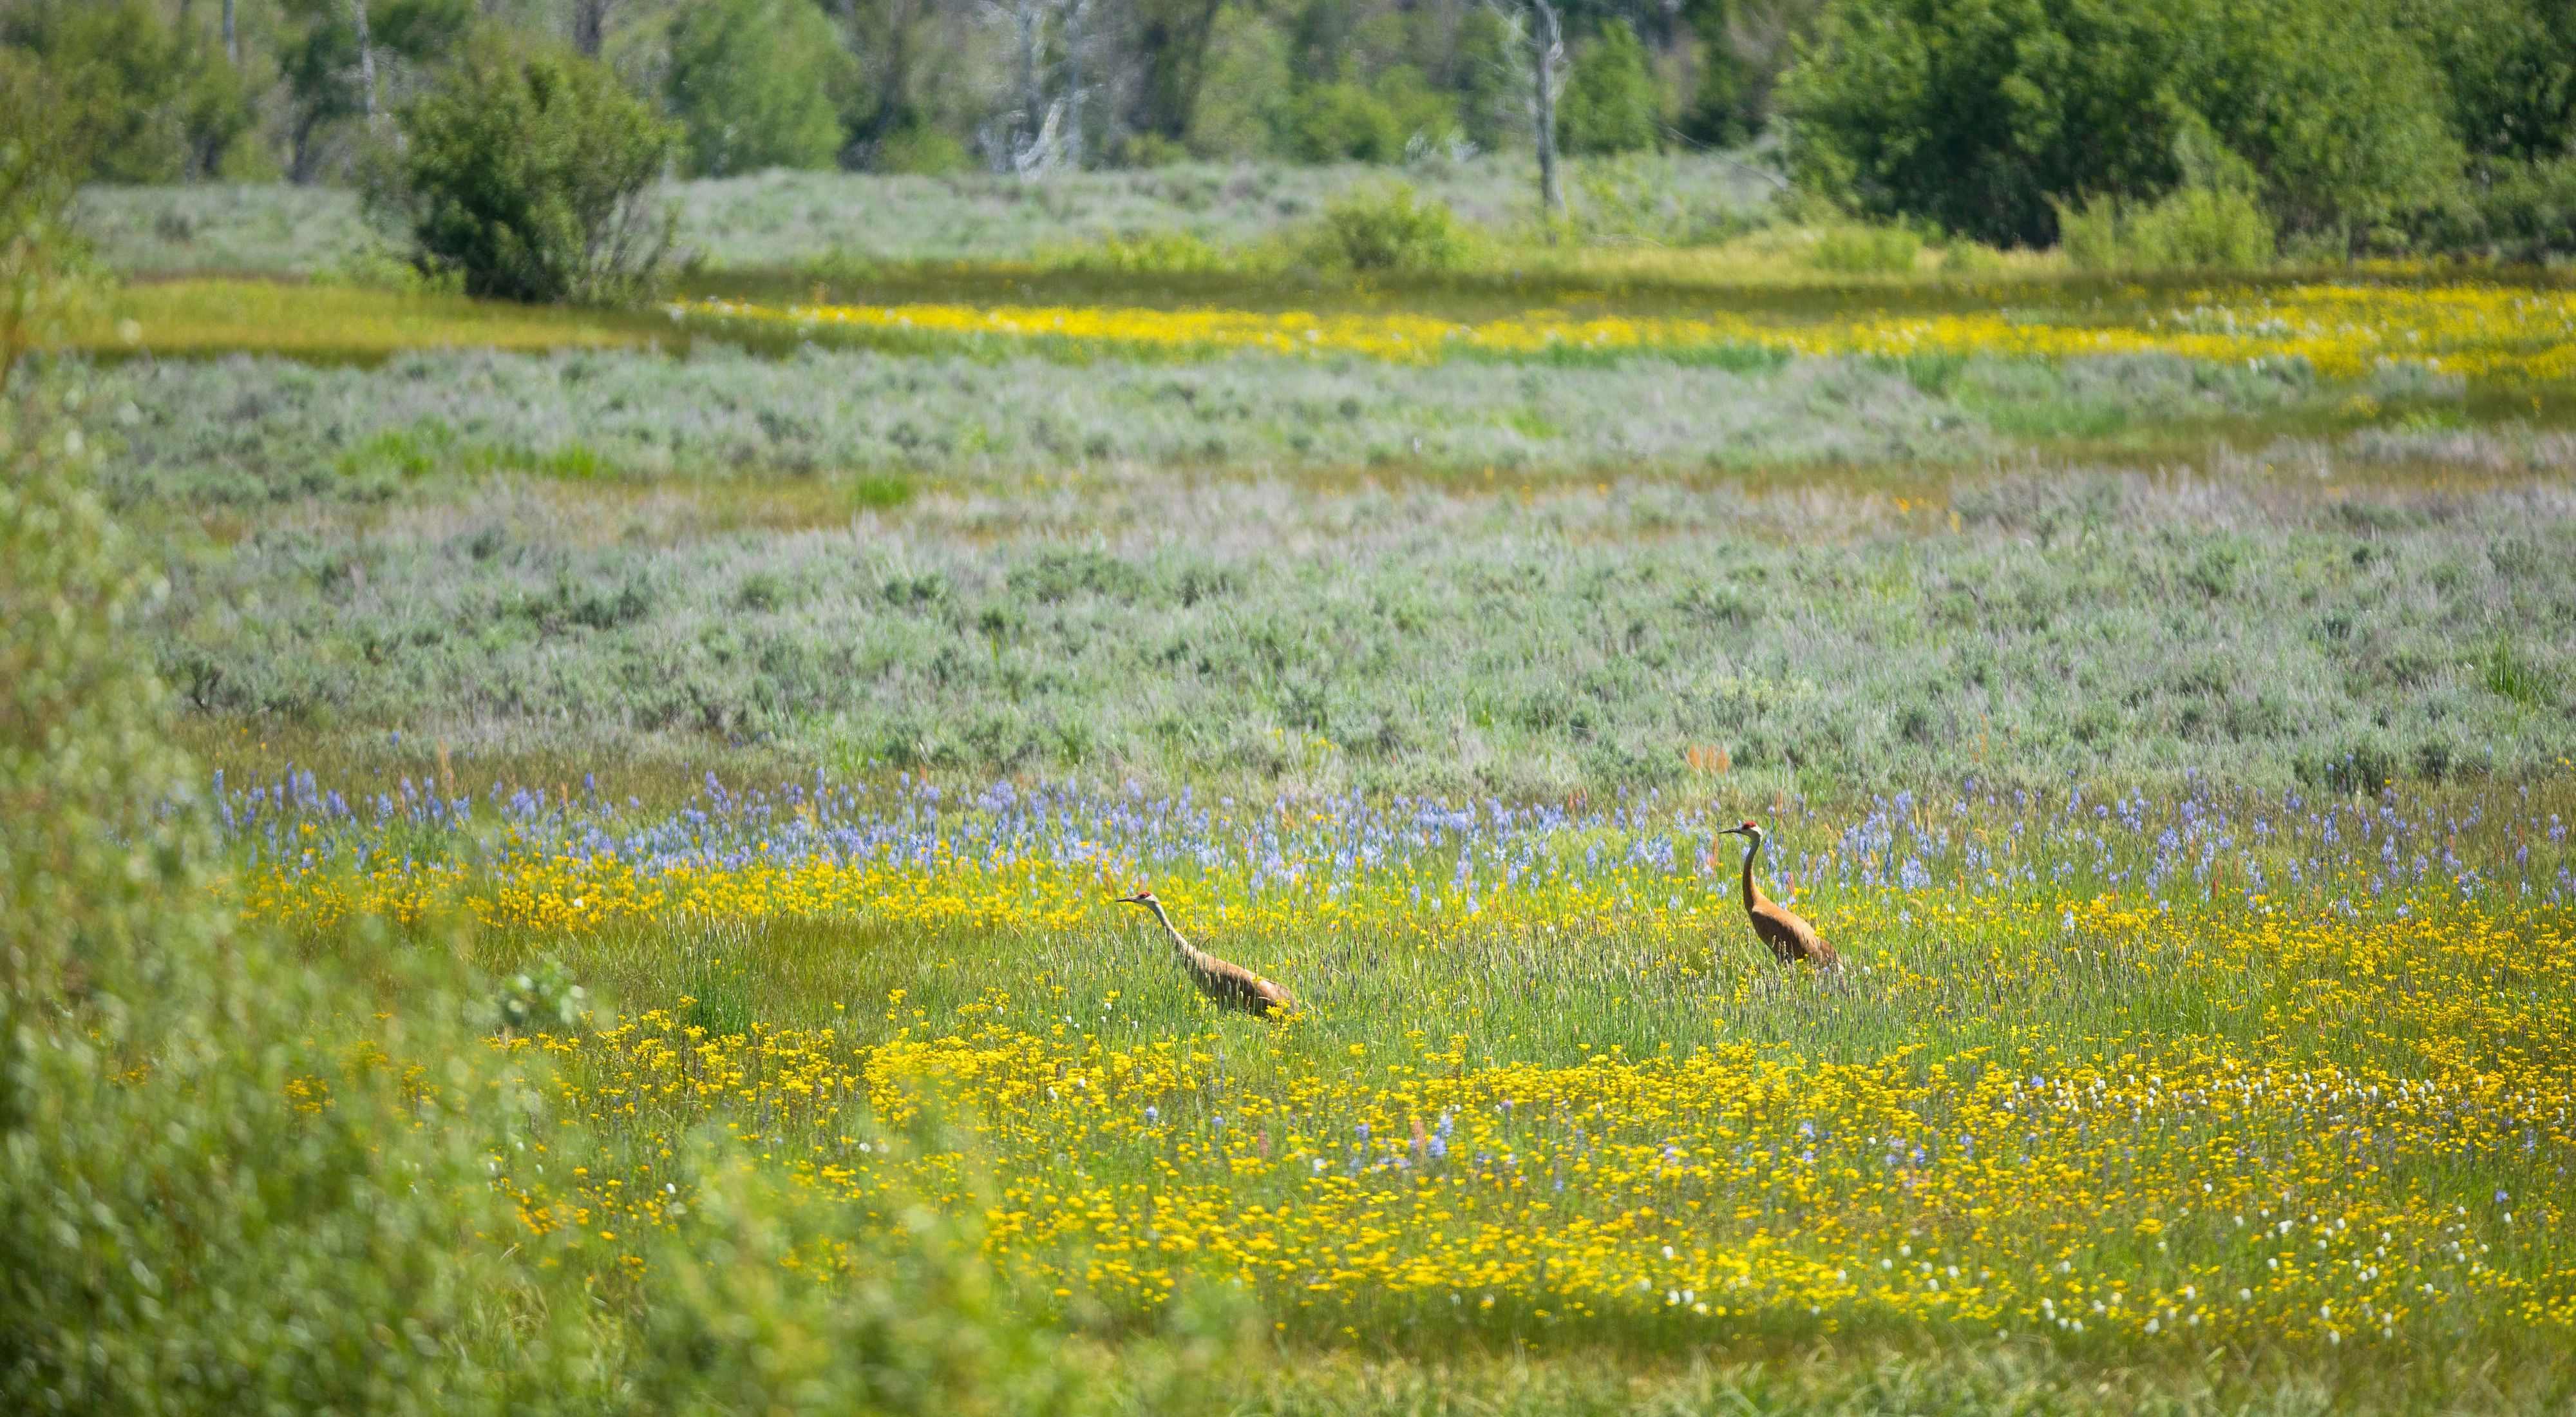 Two cranes walking in a grassy field with purple and yellow wildflowers.